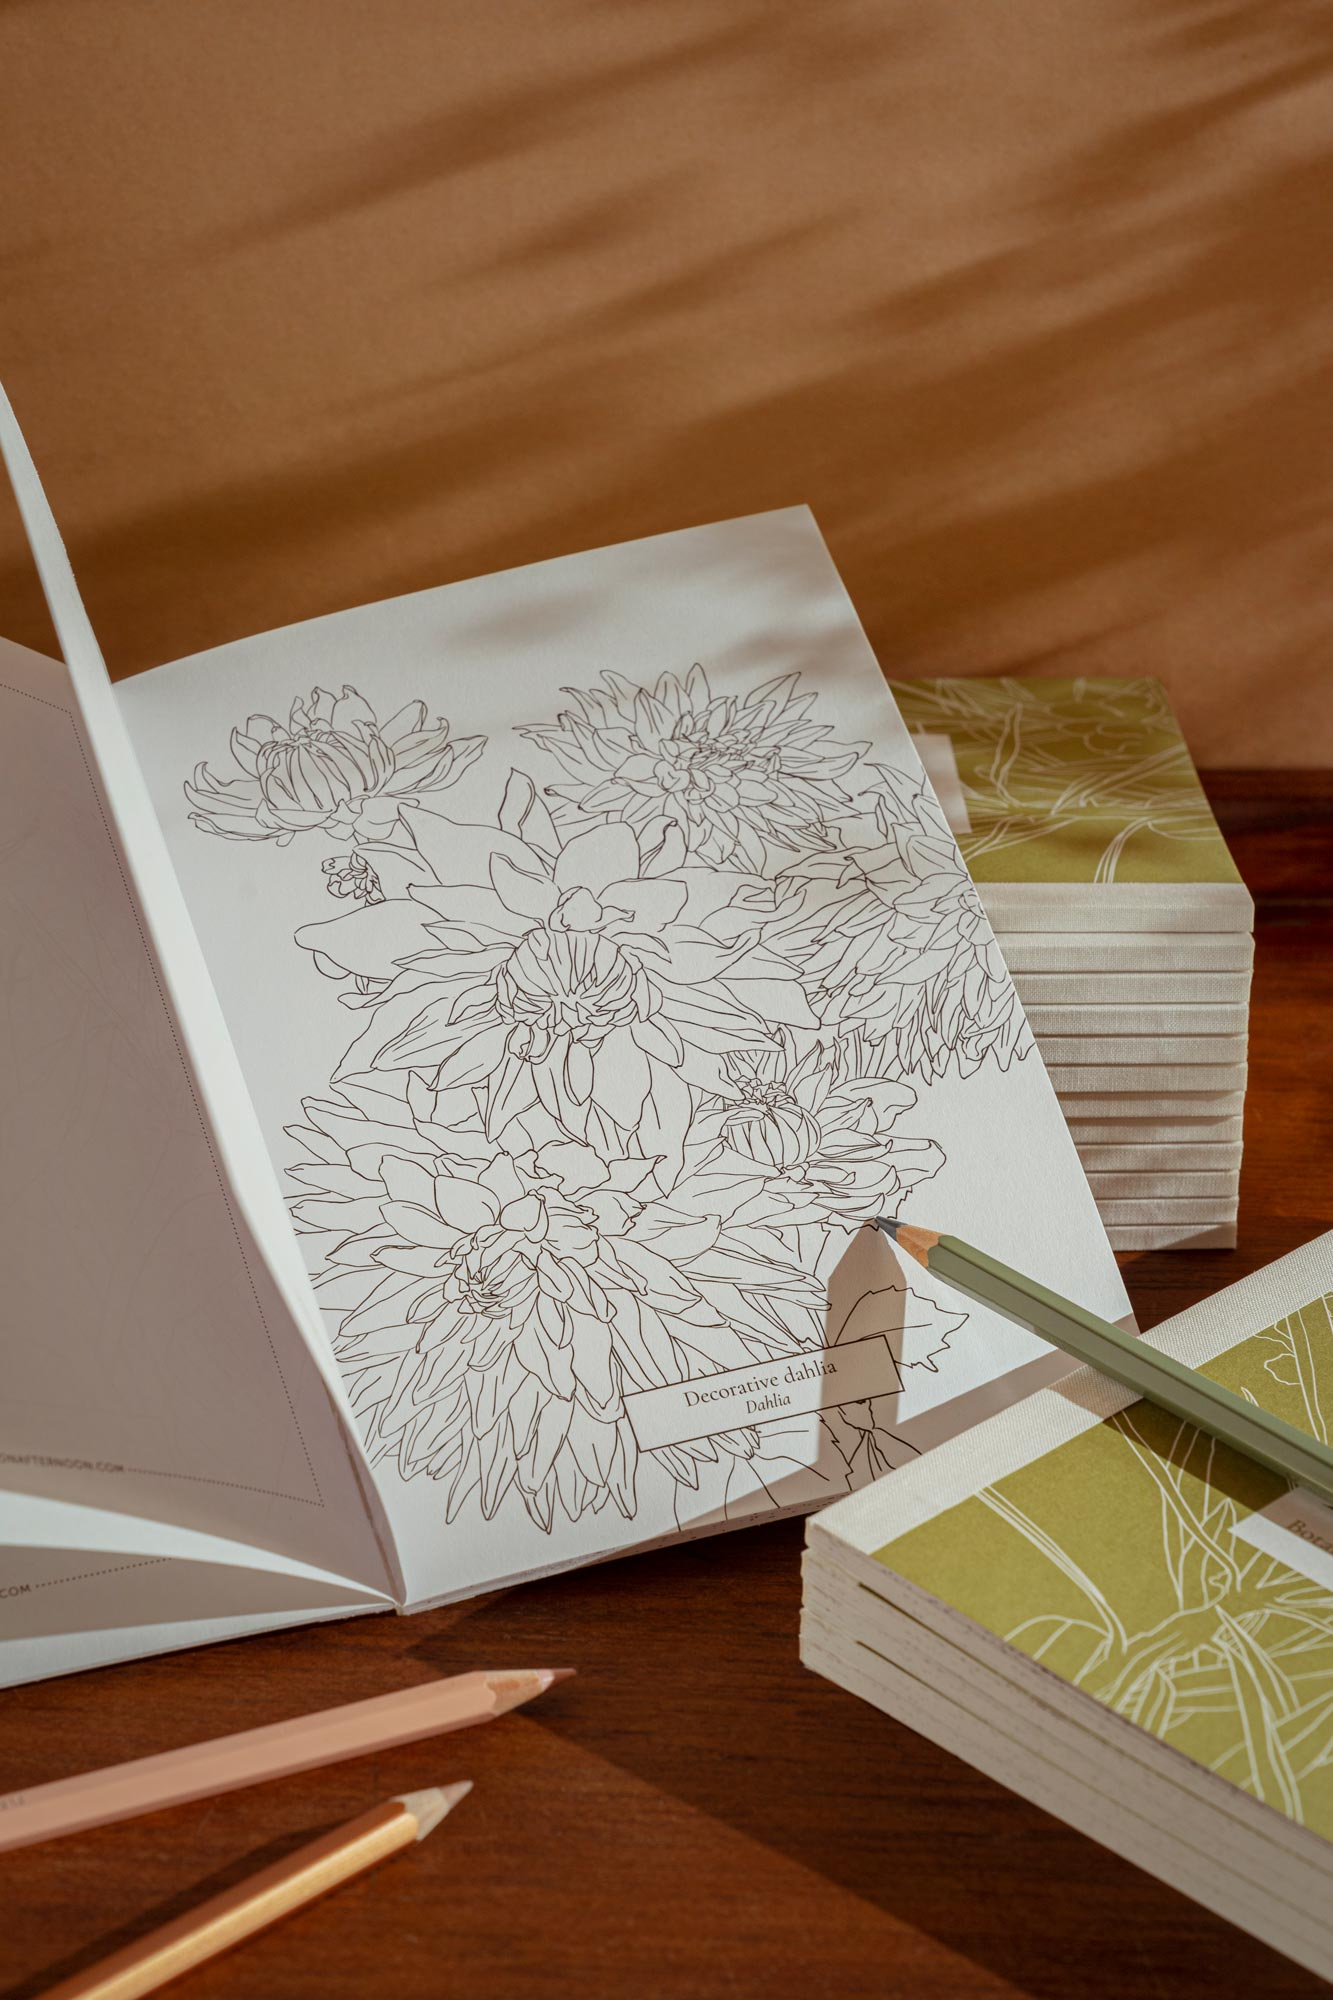 Botanical Colouring Book with plants and flowers